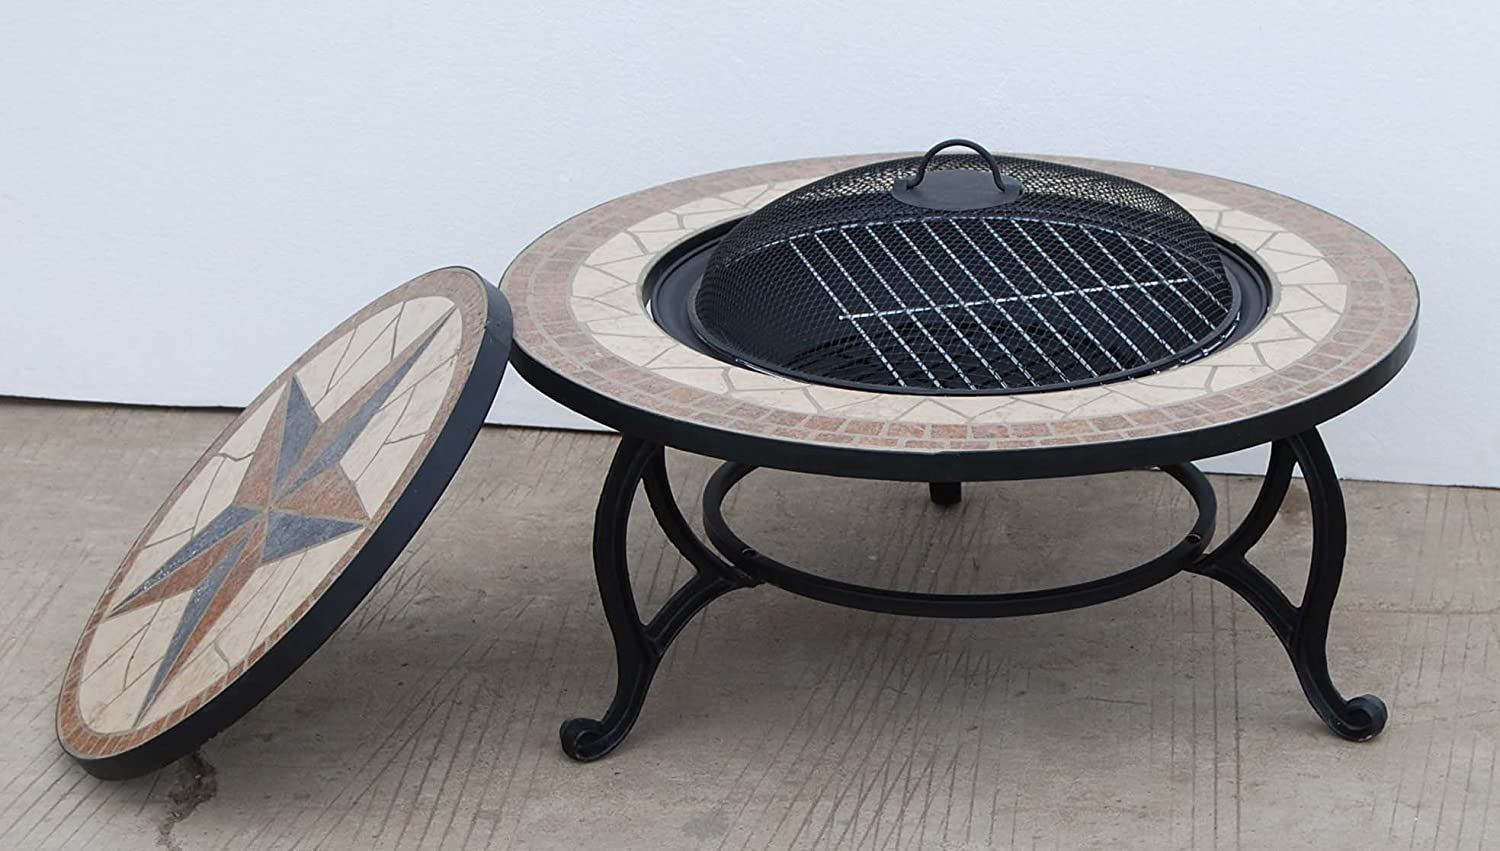 Amazon.com : SALTILLO Table U0026 Firepit   Large Fire Bowl, Garden Heater,  Outdoor Dining, BBQ Fire Pit : Garden U0026 Outdoor